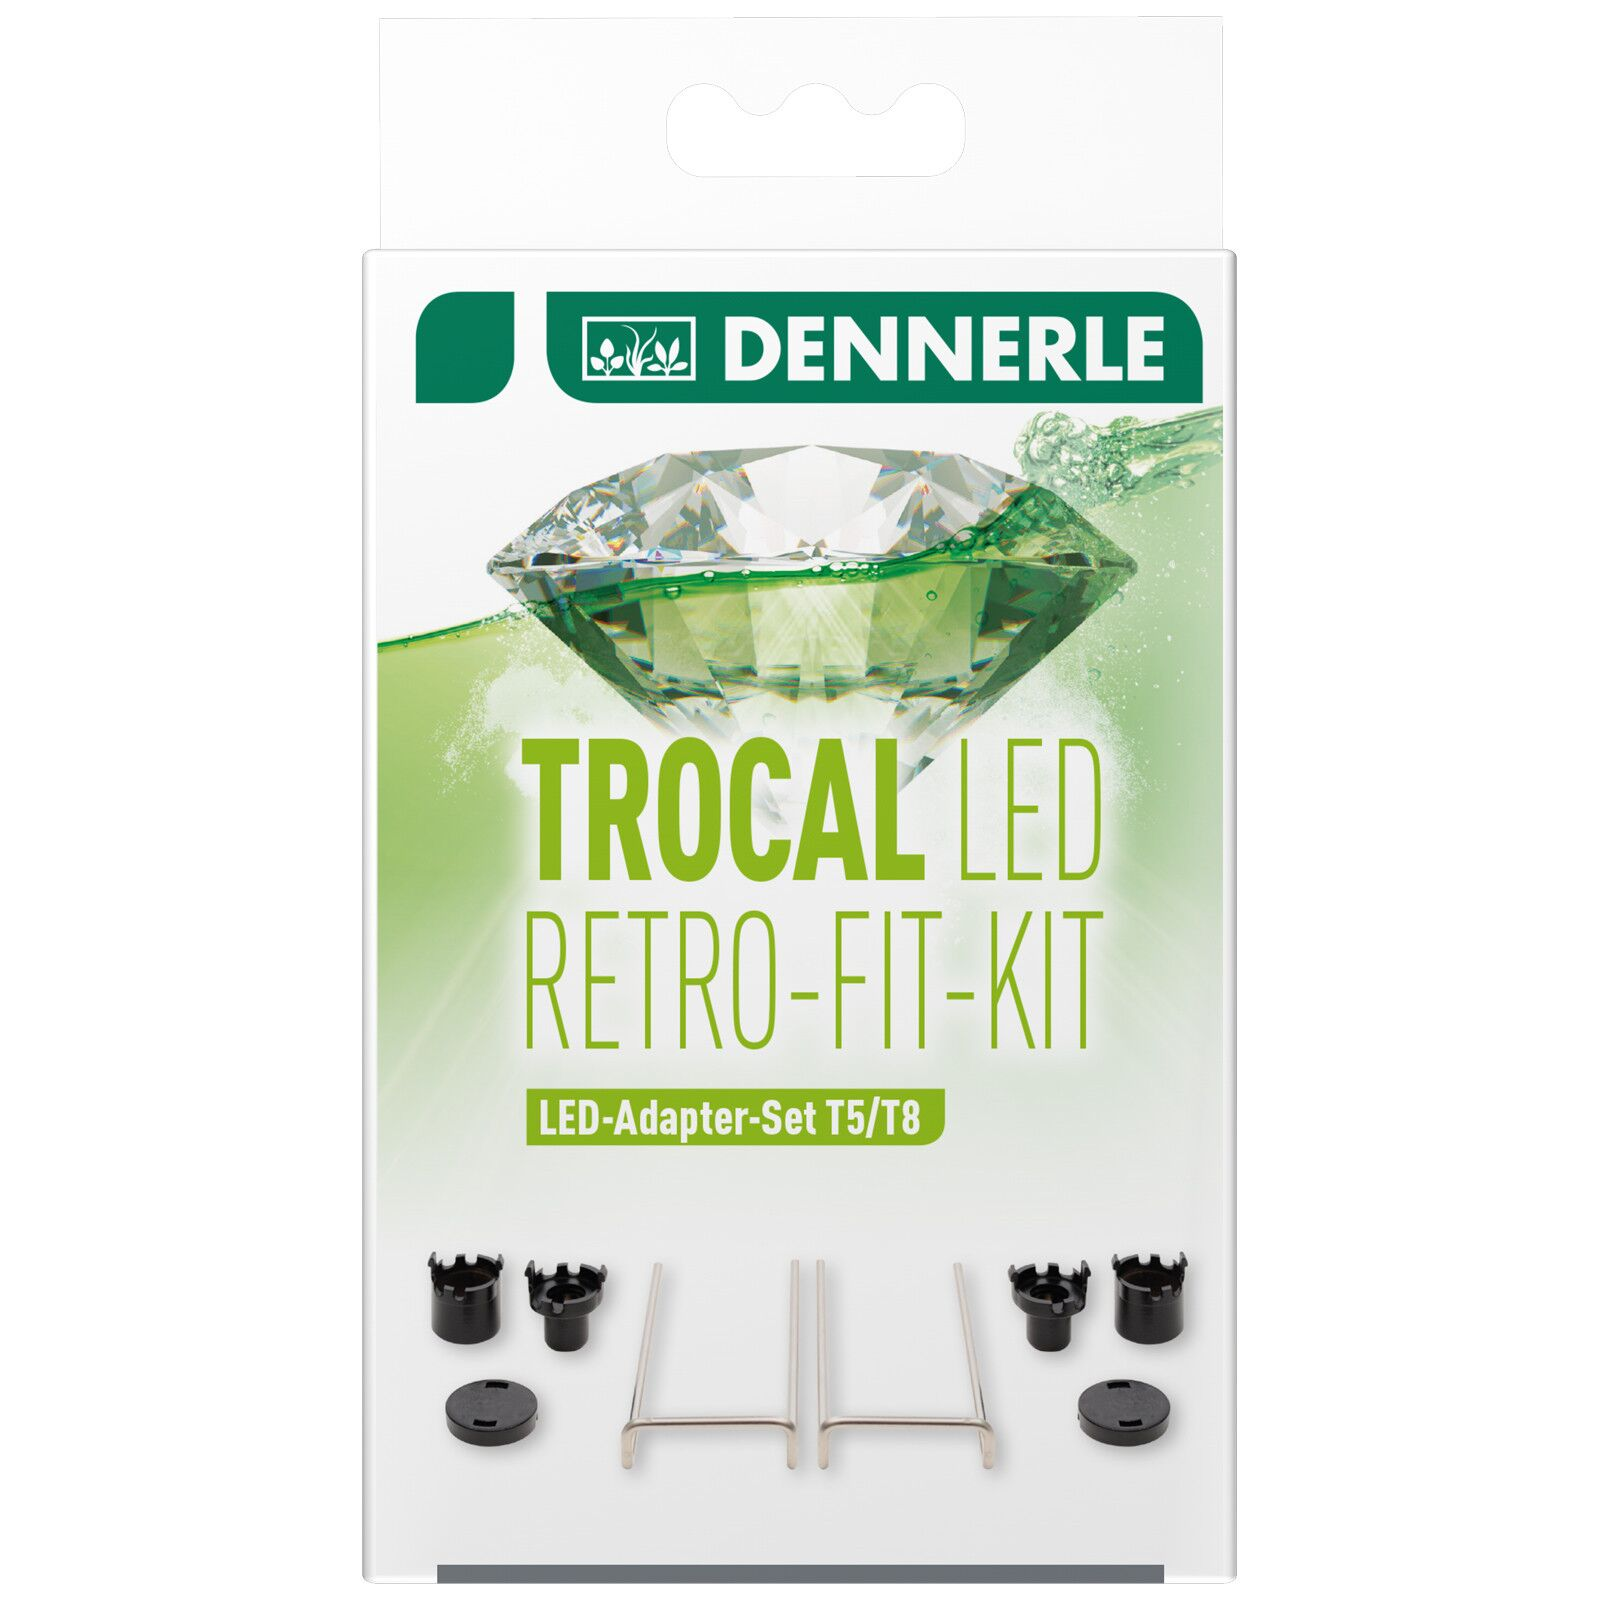 Dennerle - Trocal LED - Retro-Fit-Kit